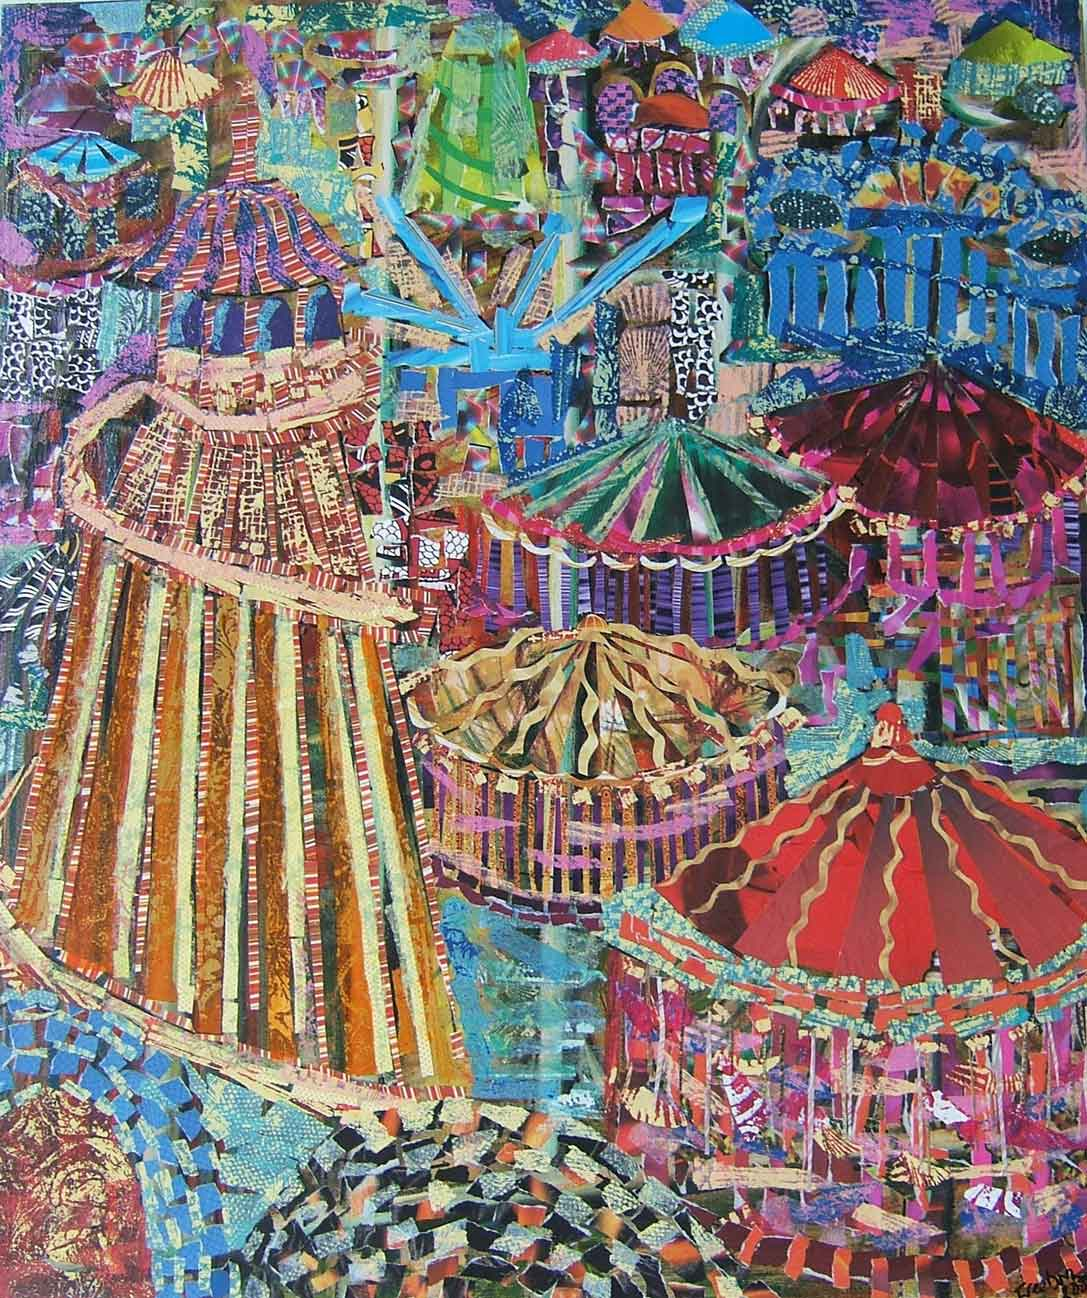 Colourful Fairground collage by Rosalind Freeborn, a London artist who uses fragments of magazine pa